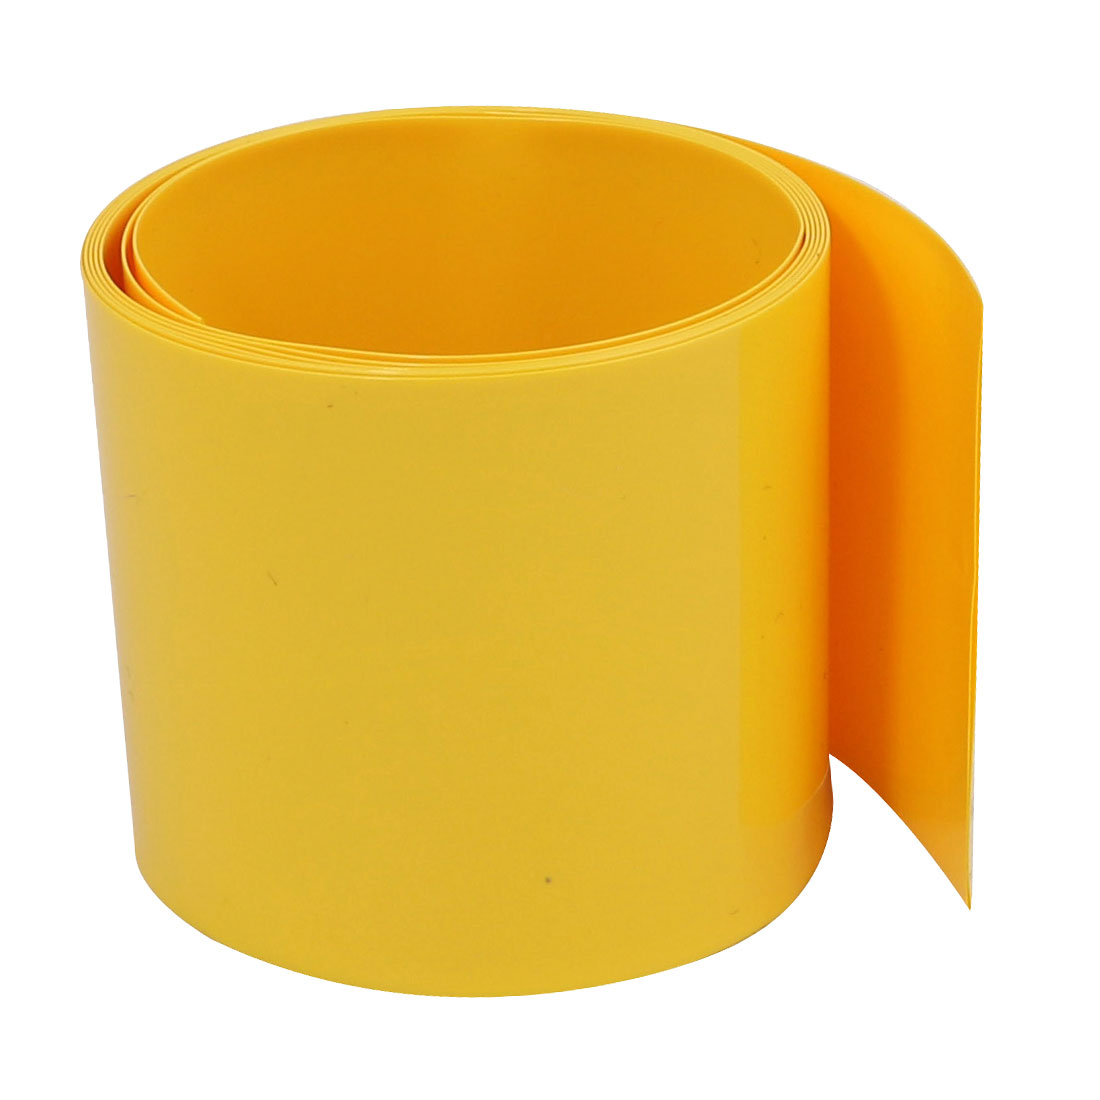 45mm Flat Width 1M Long PVC Heat Shrinkable Tube Yellow for Capacitive Battery